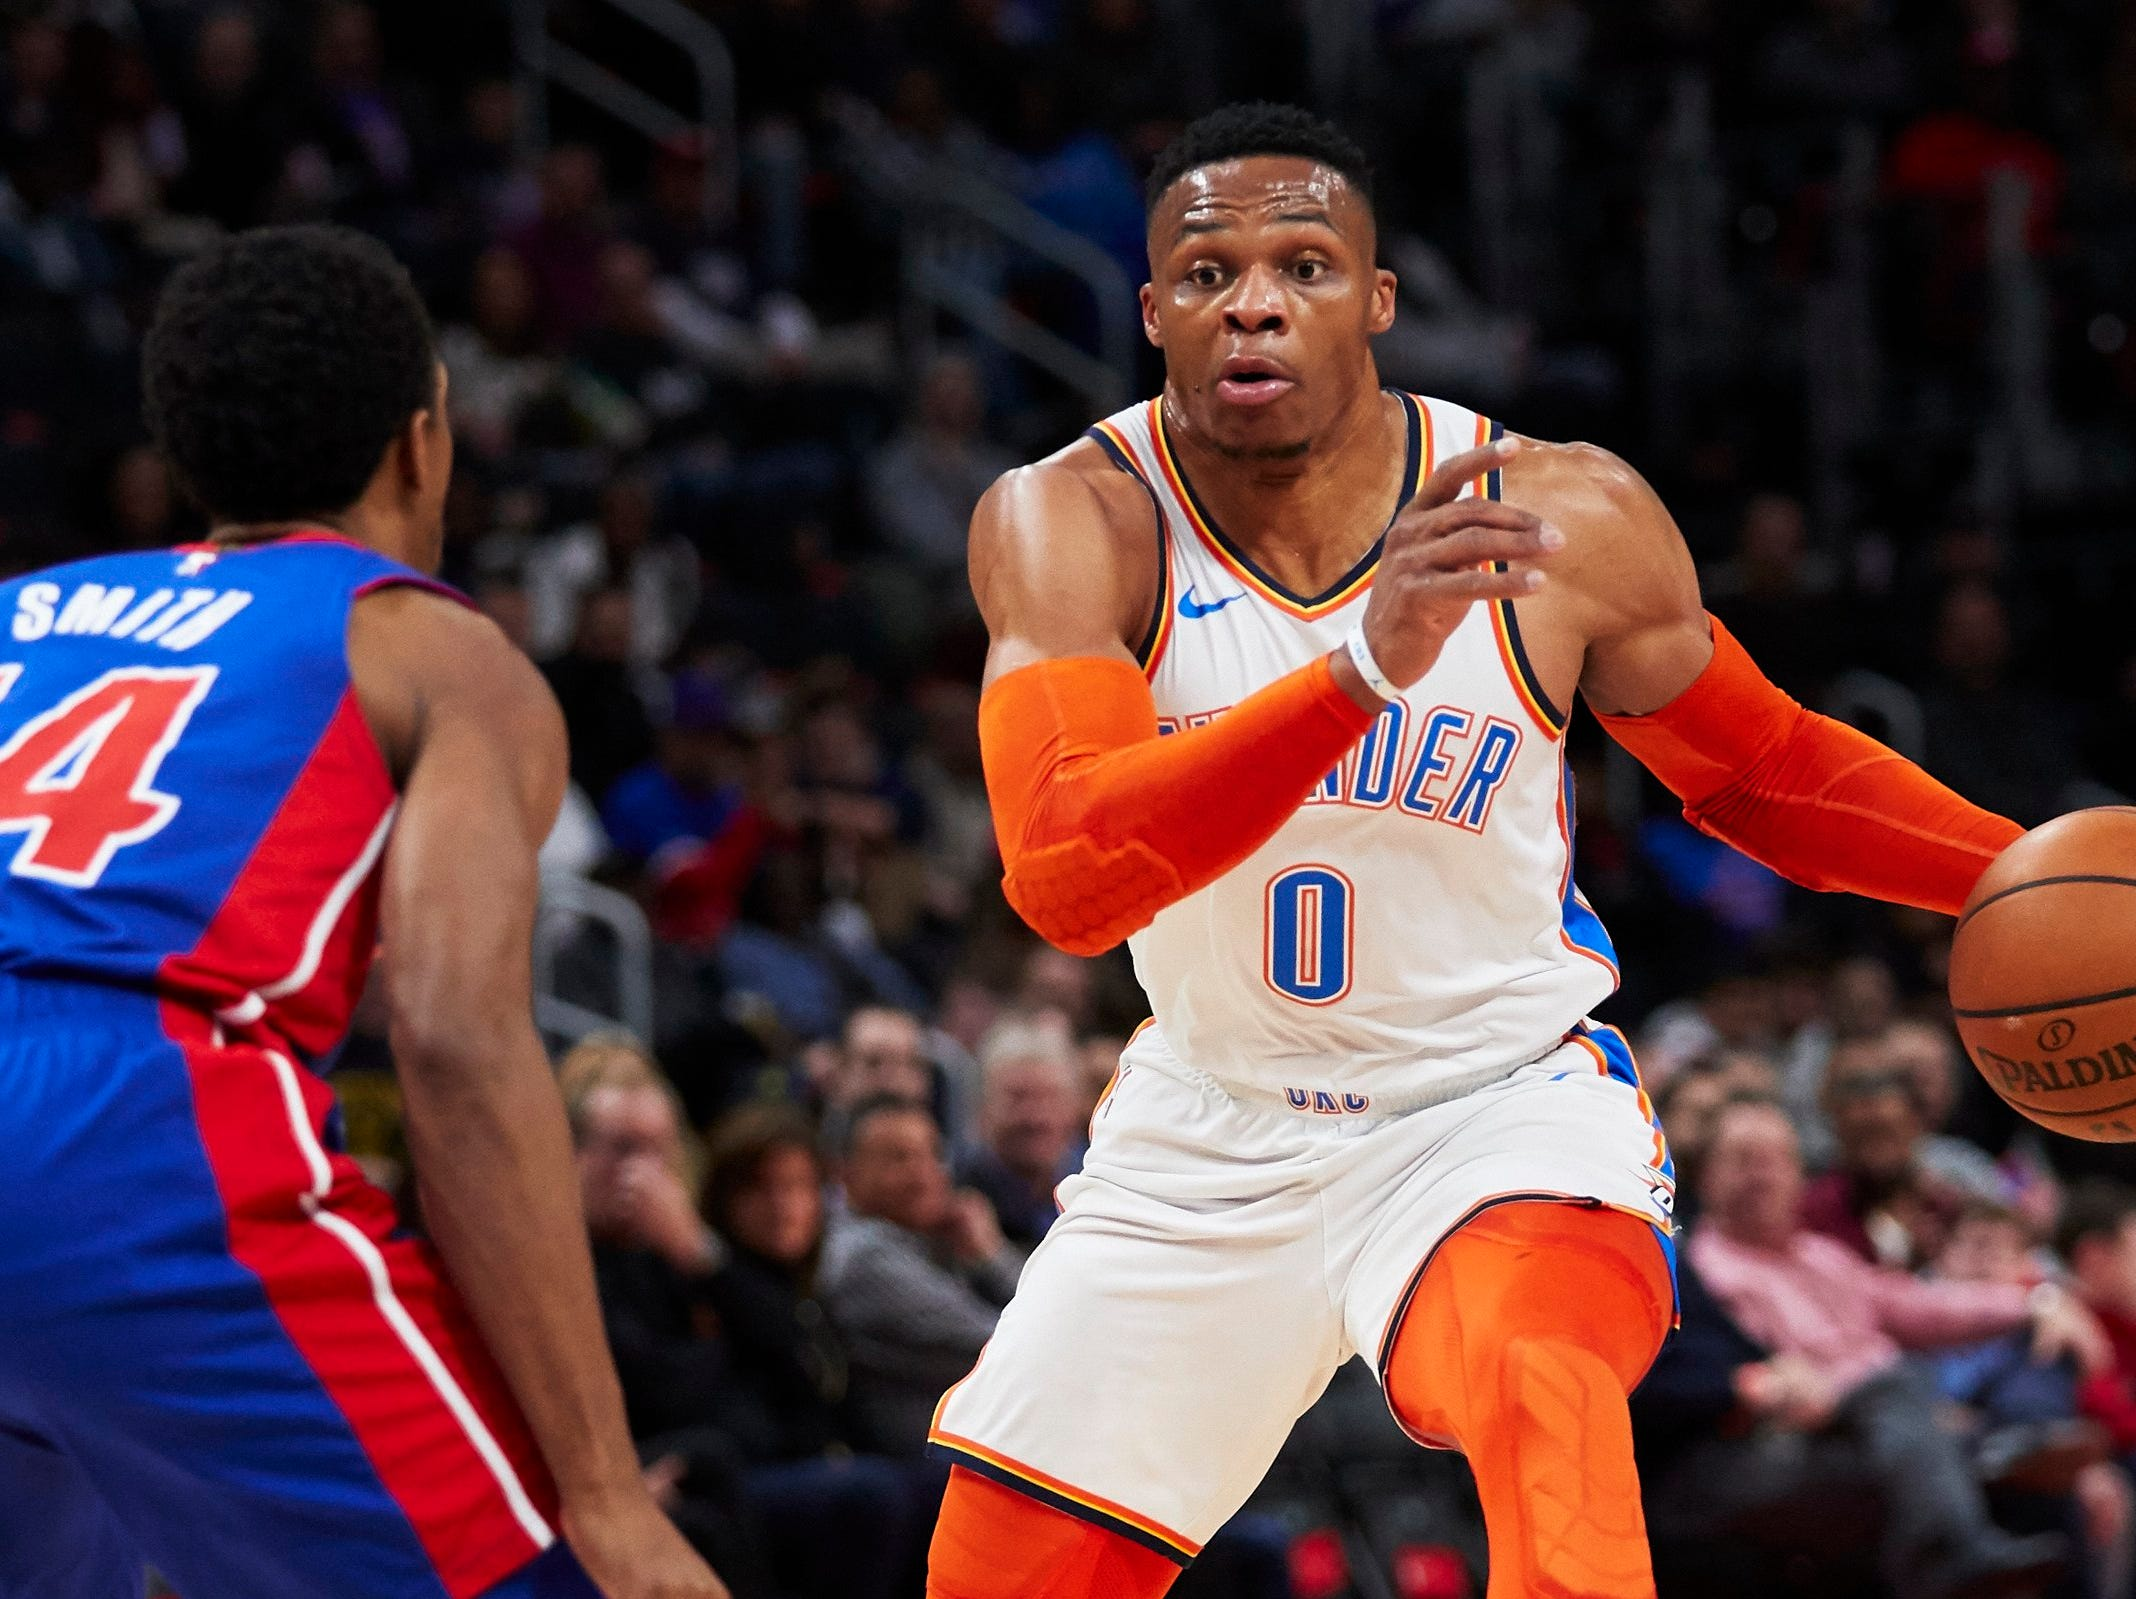 Oklahoma City Thunder guard Russell Westbrook (0) dribbles defended by Detroit Pistons guard Ish Smith (14) in the first half at Little Caesars Arena.